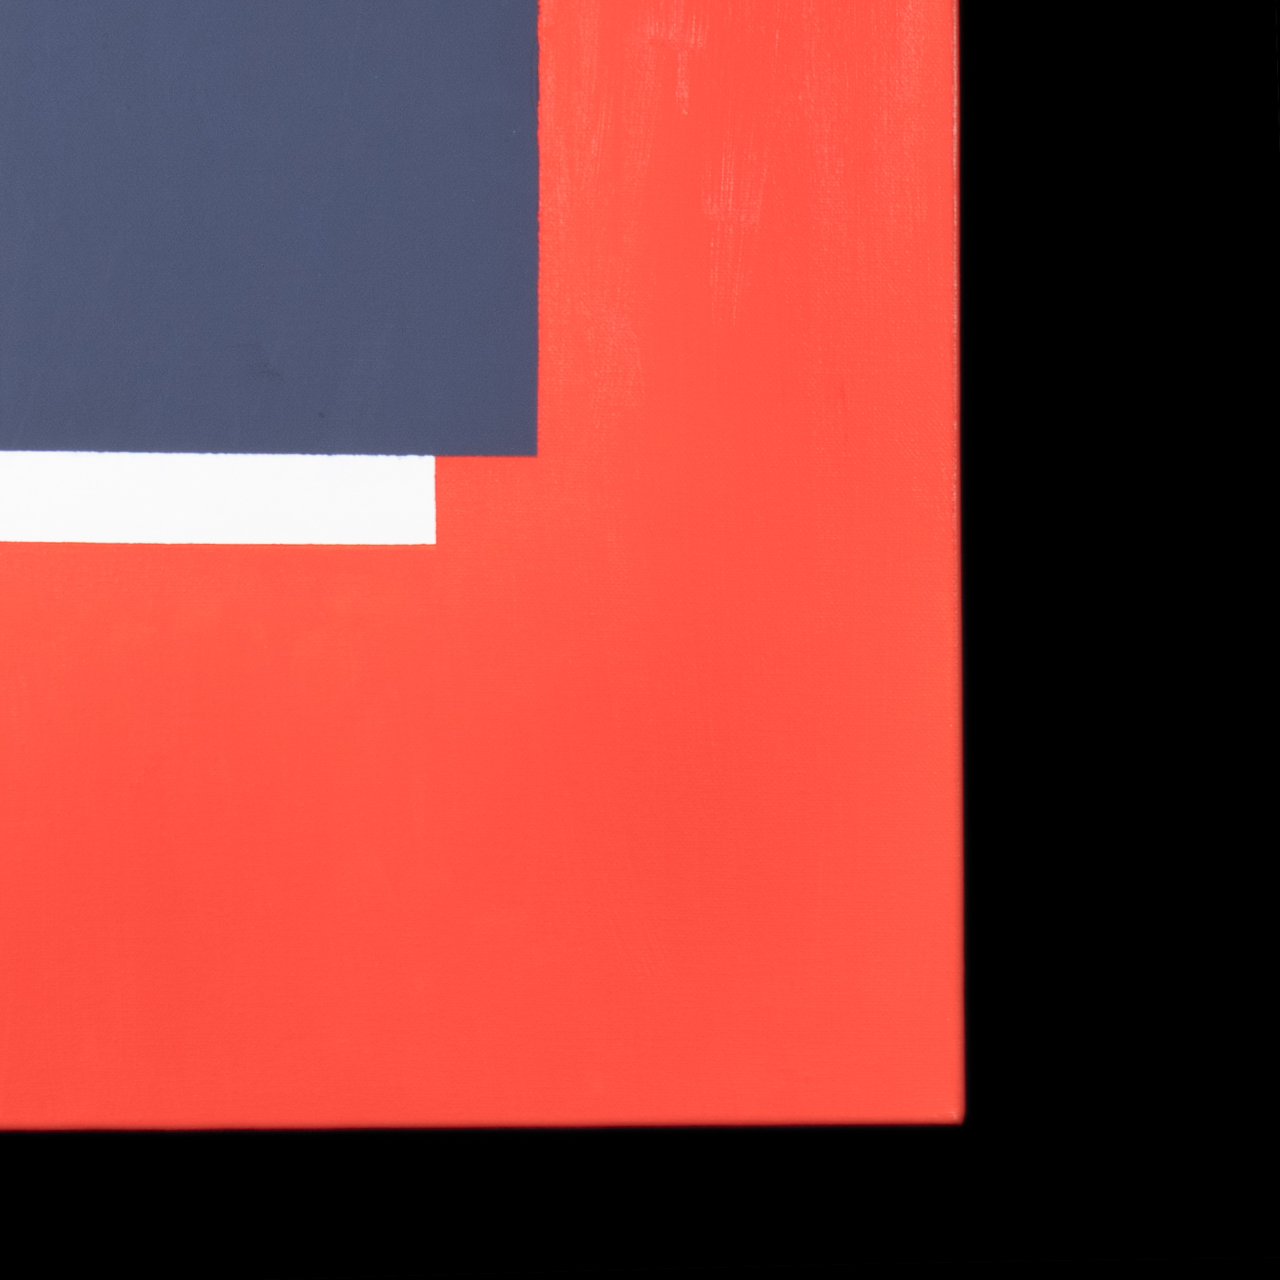 Pair of Contemporary Abstract Paintings Jacob Lloyds - Image 9 of 13